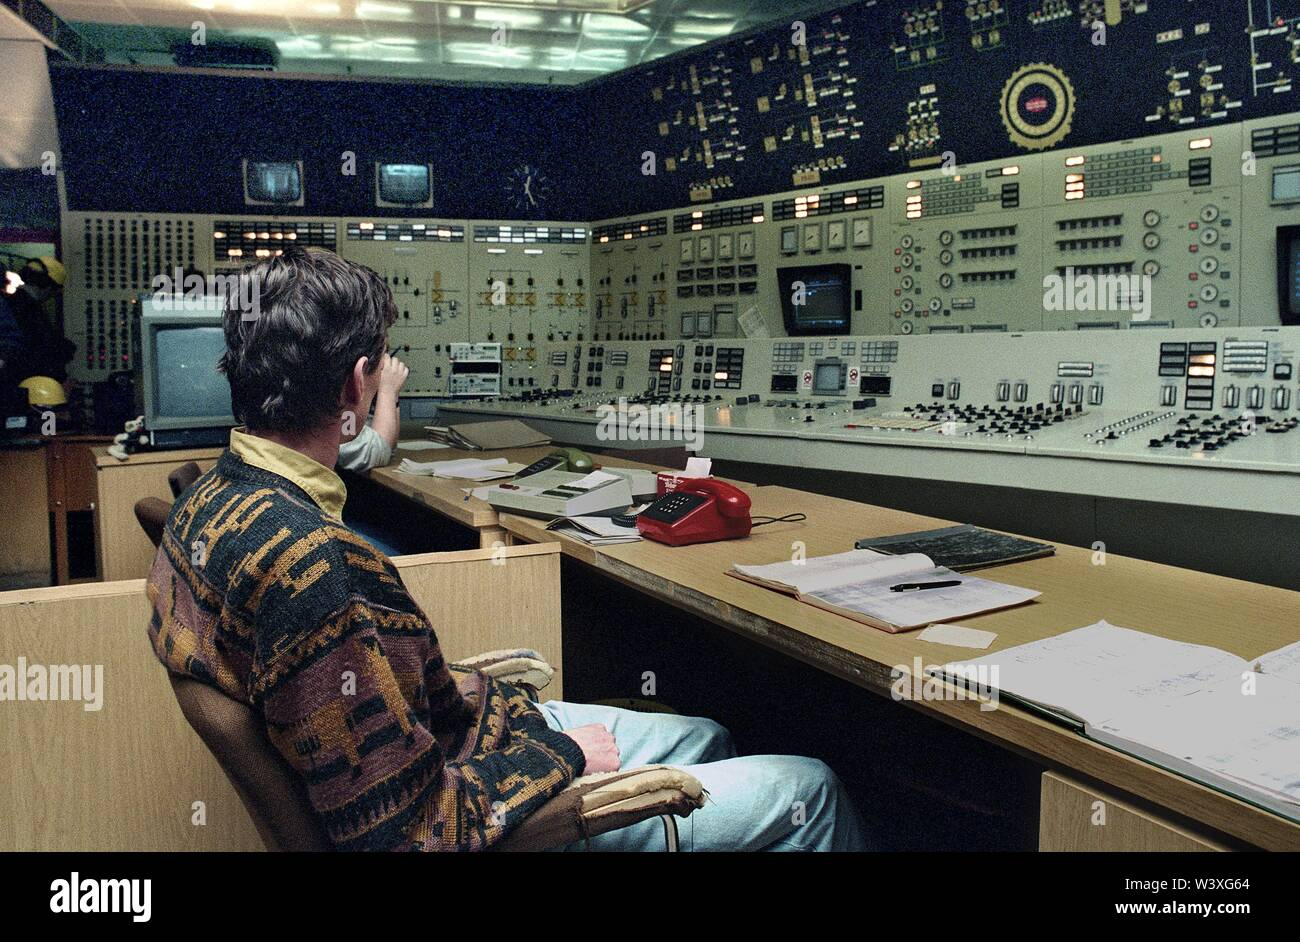 FILED - 01 January 1990, Berlin, Lubmin: Mecklenburg-Western Pomerania / GDR / 1990 Lubmin nuclear power plant near Greifswald. Block 5 is still under construction. A little later, the power plant is shut down for safety reasons. Later, an interim storage facility for radioactive waste will be set up there. The technology of the NPP was Soviet. A total of 5 blocks were planned, 4 were in operation, each with a capacity of 400 MW. All decommissioned in 1990 // Atom / Energy / Reactor / Atom / Nuclear Power / Federal States *** Local Caption *** East Germany / Energy Atomic power plant near Grei - Stock Image